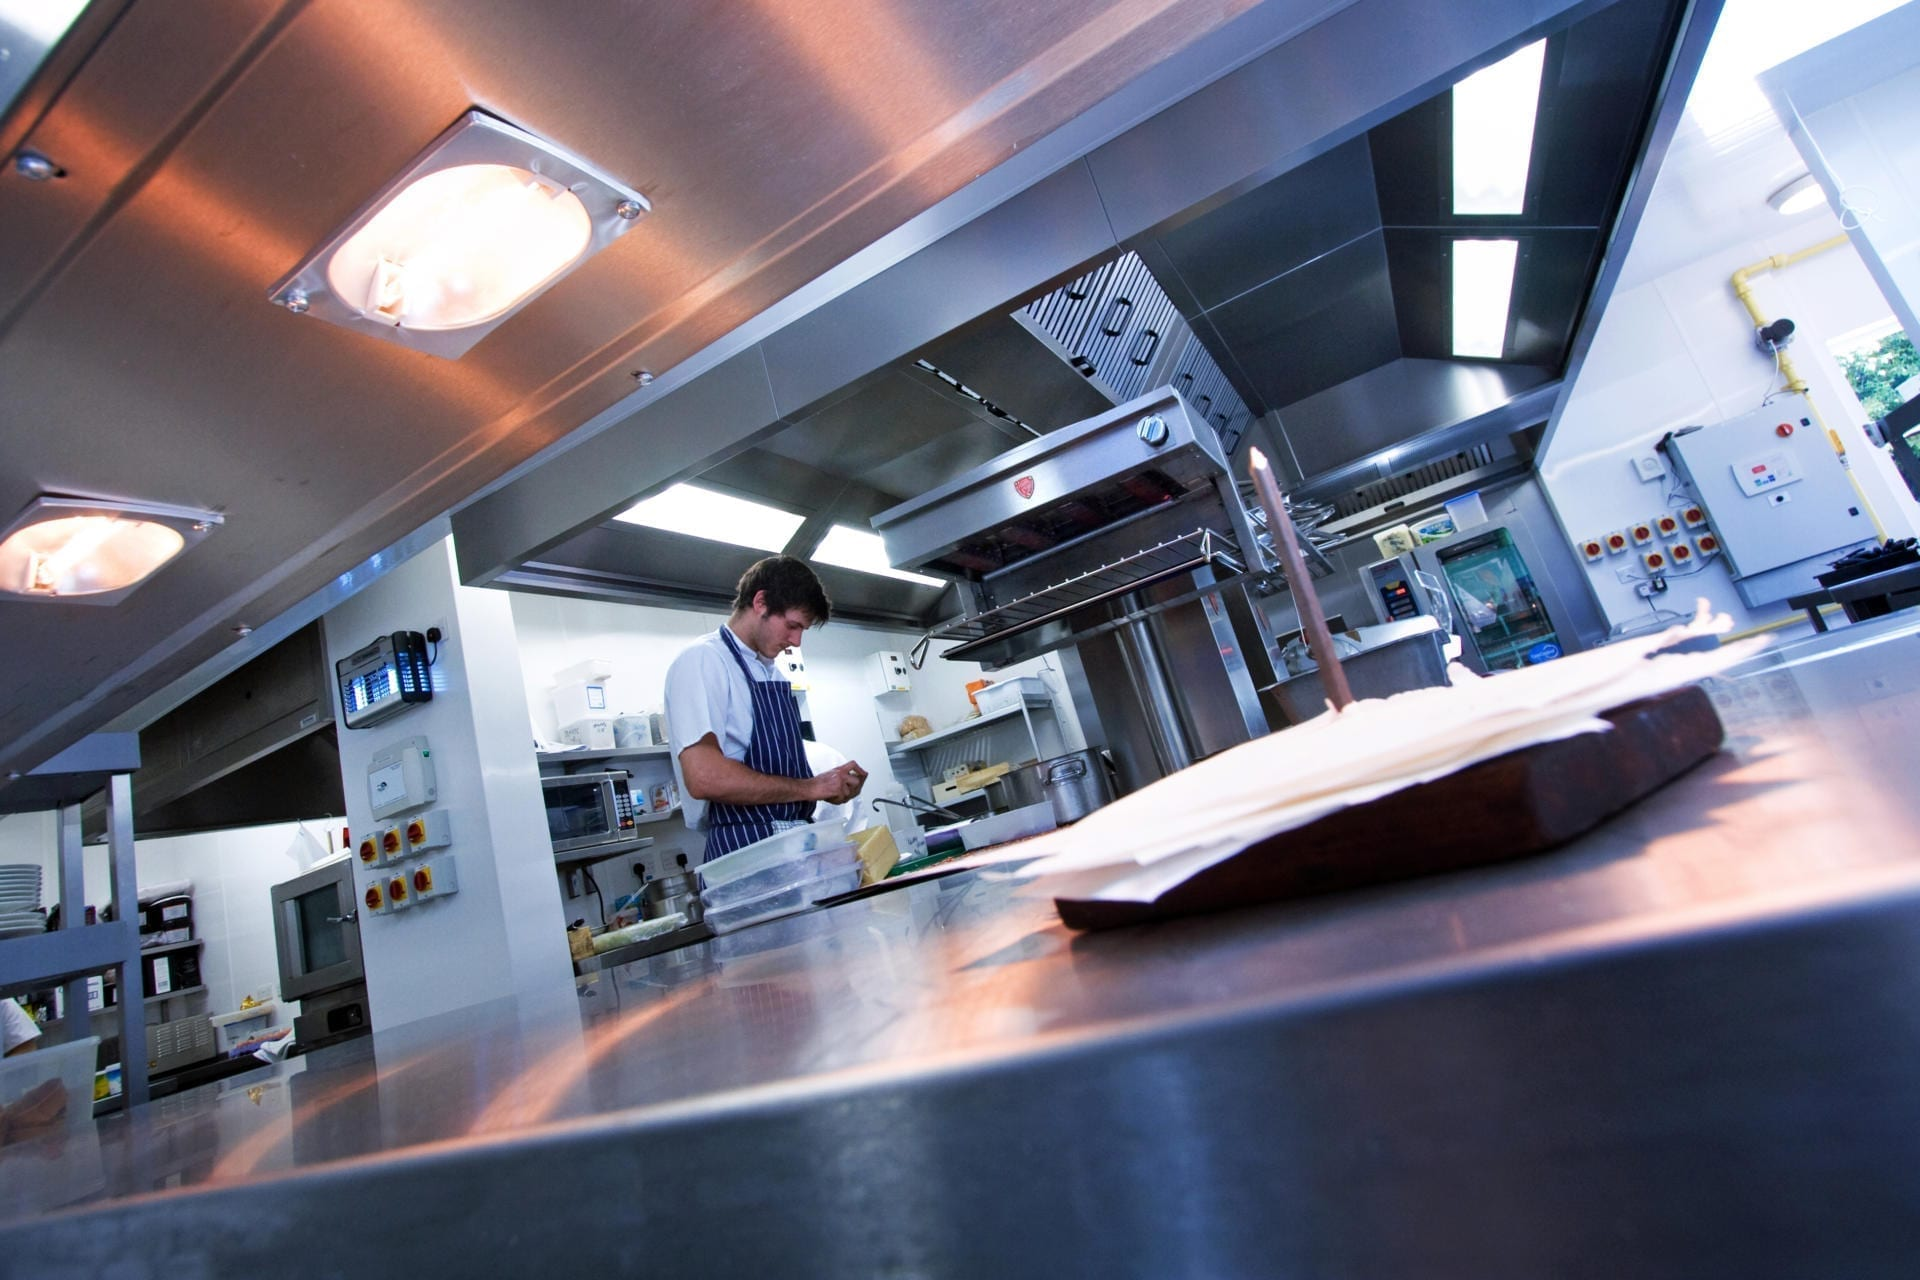 Ockenden-Manor-Hotel-Sussex-Restaurant-Kitchen-Fabrication-Stainless-Steel-Commercial-spacecatering_9